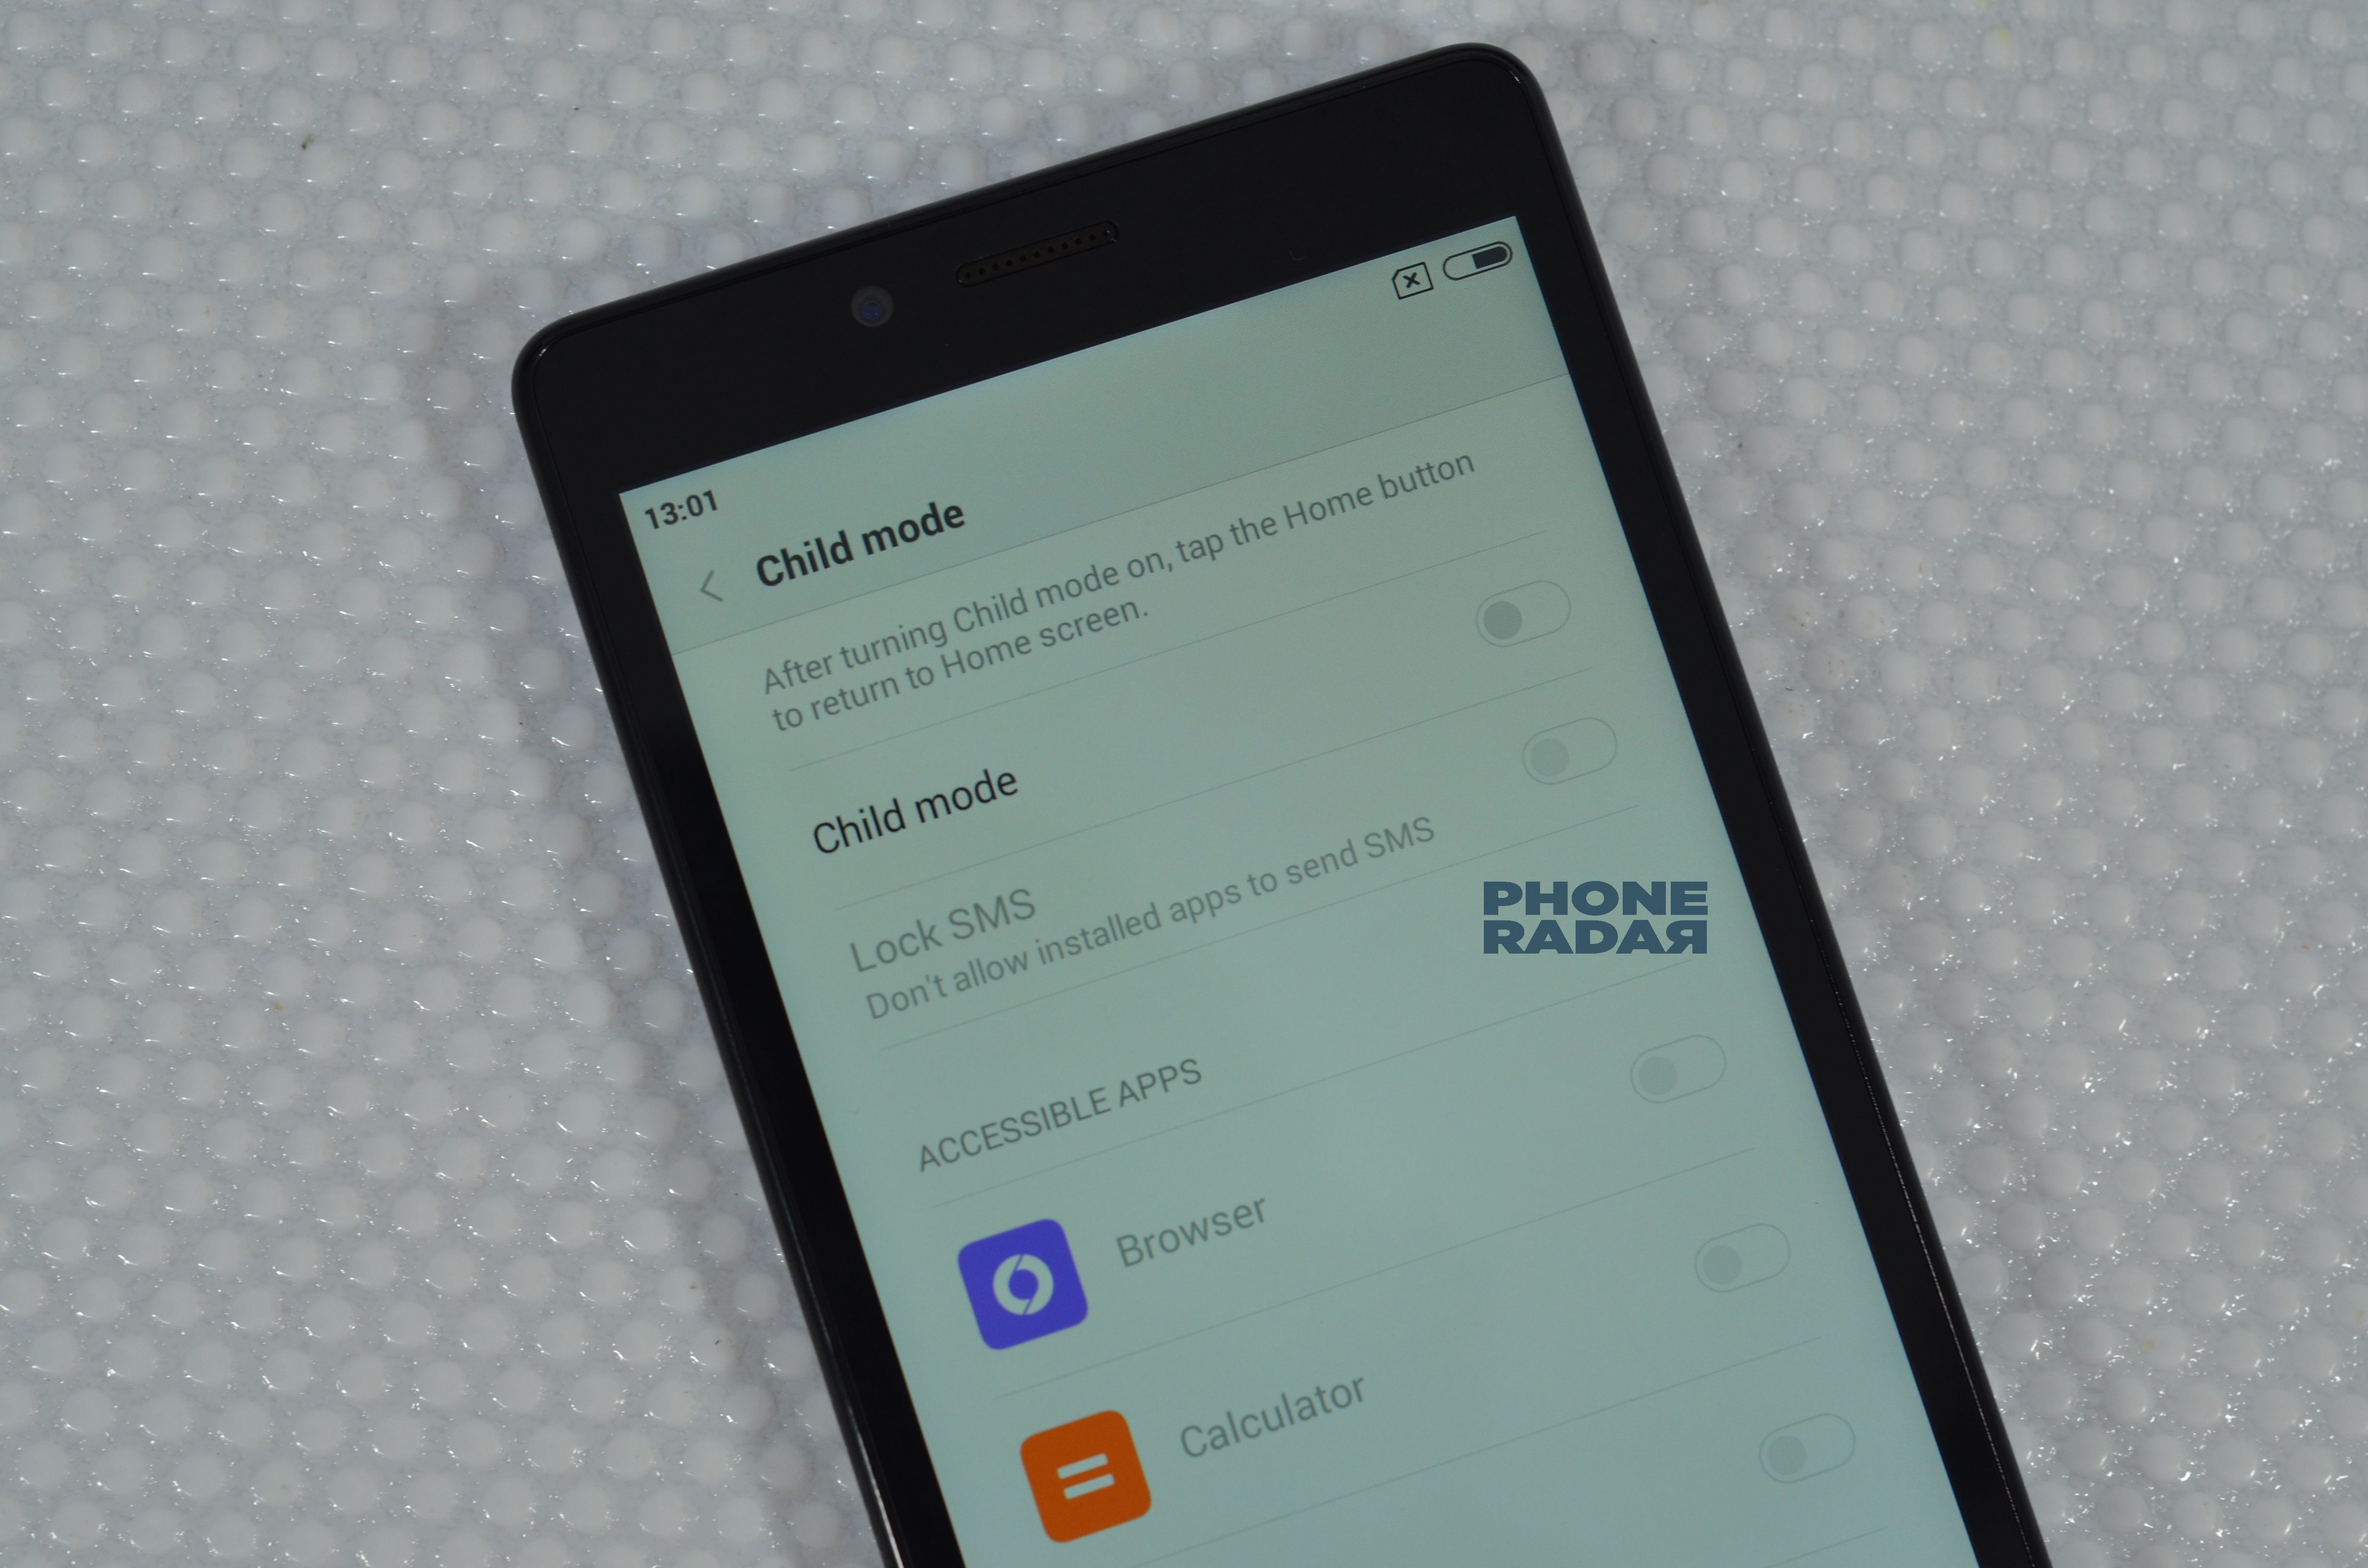 Xiaomi Redmi Note Prime Child mode